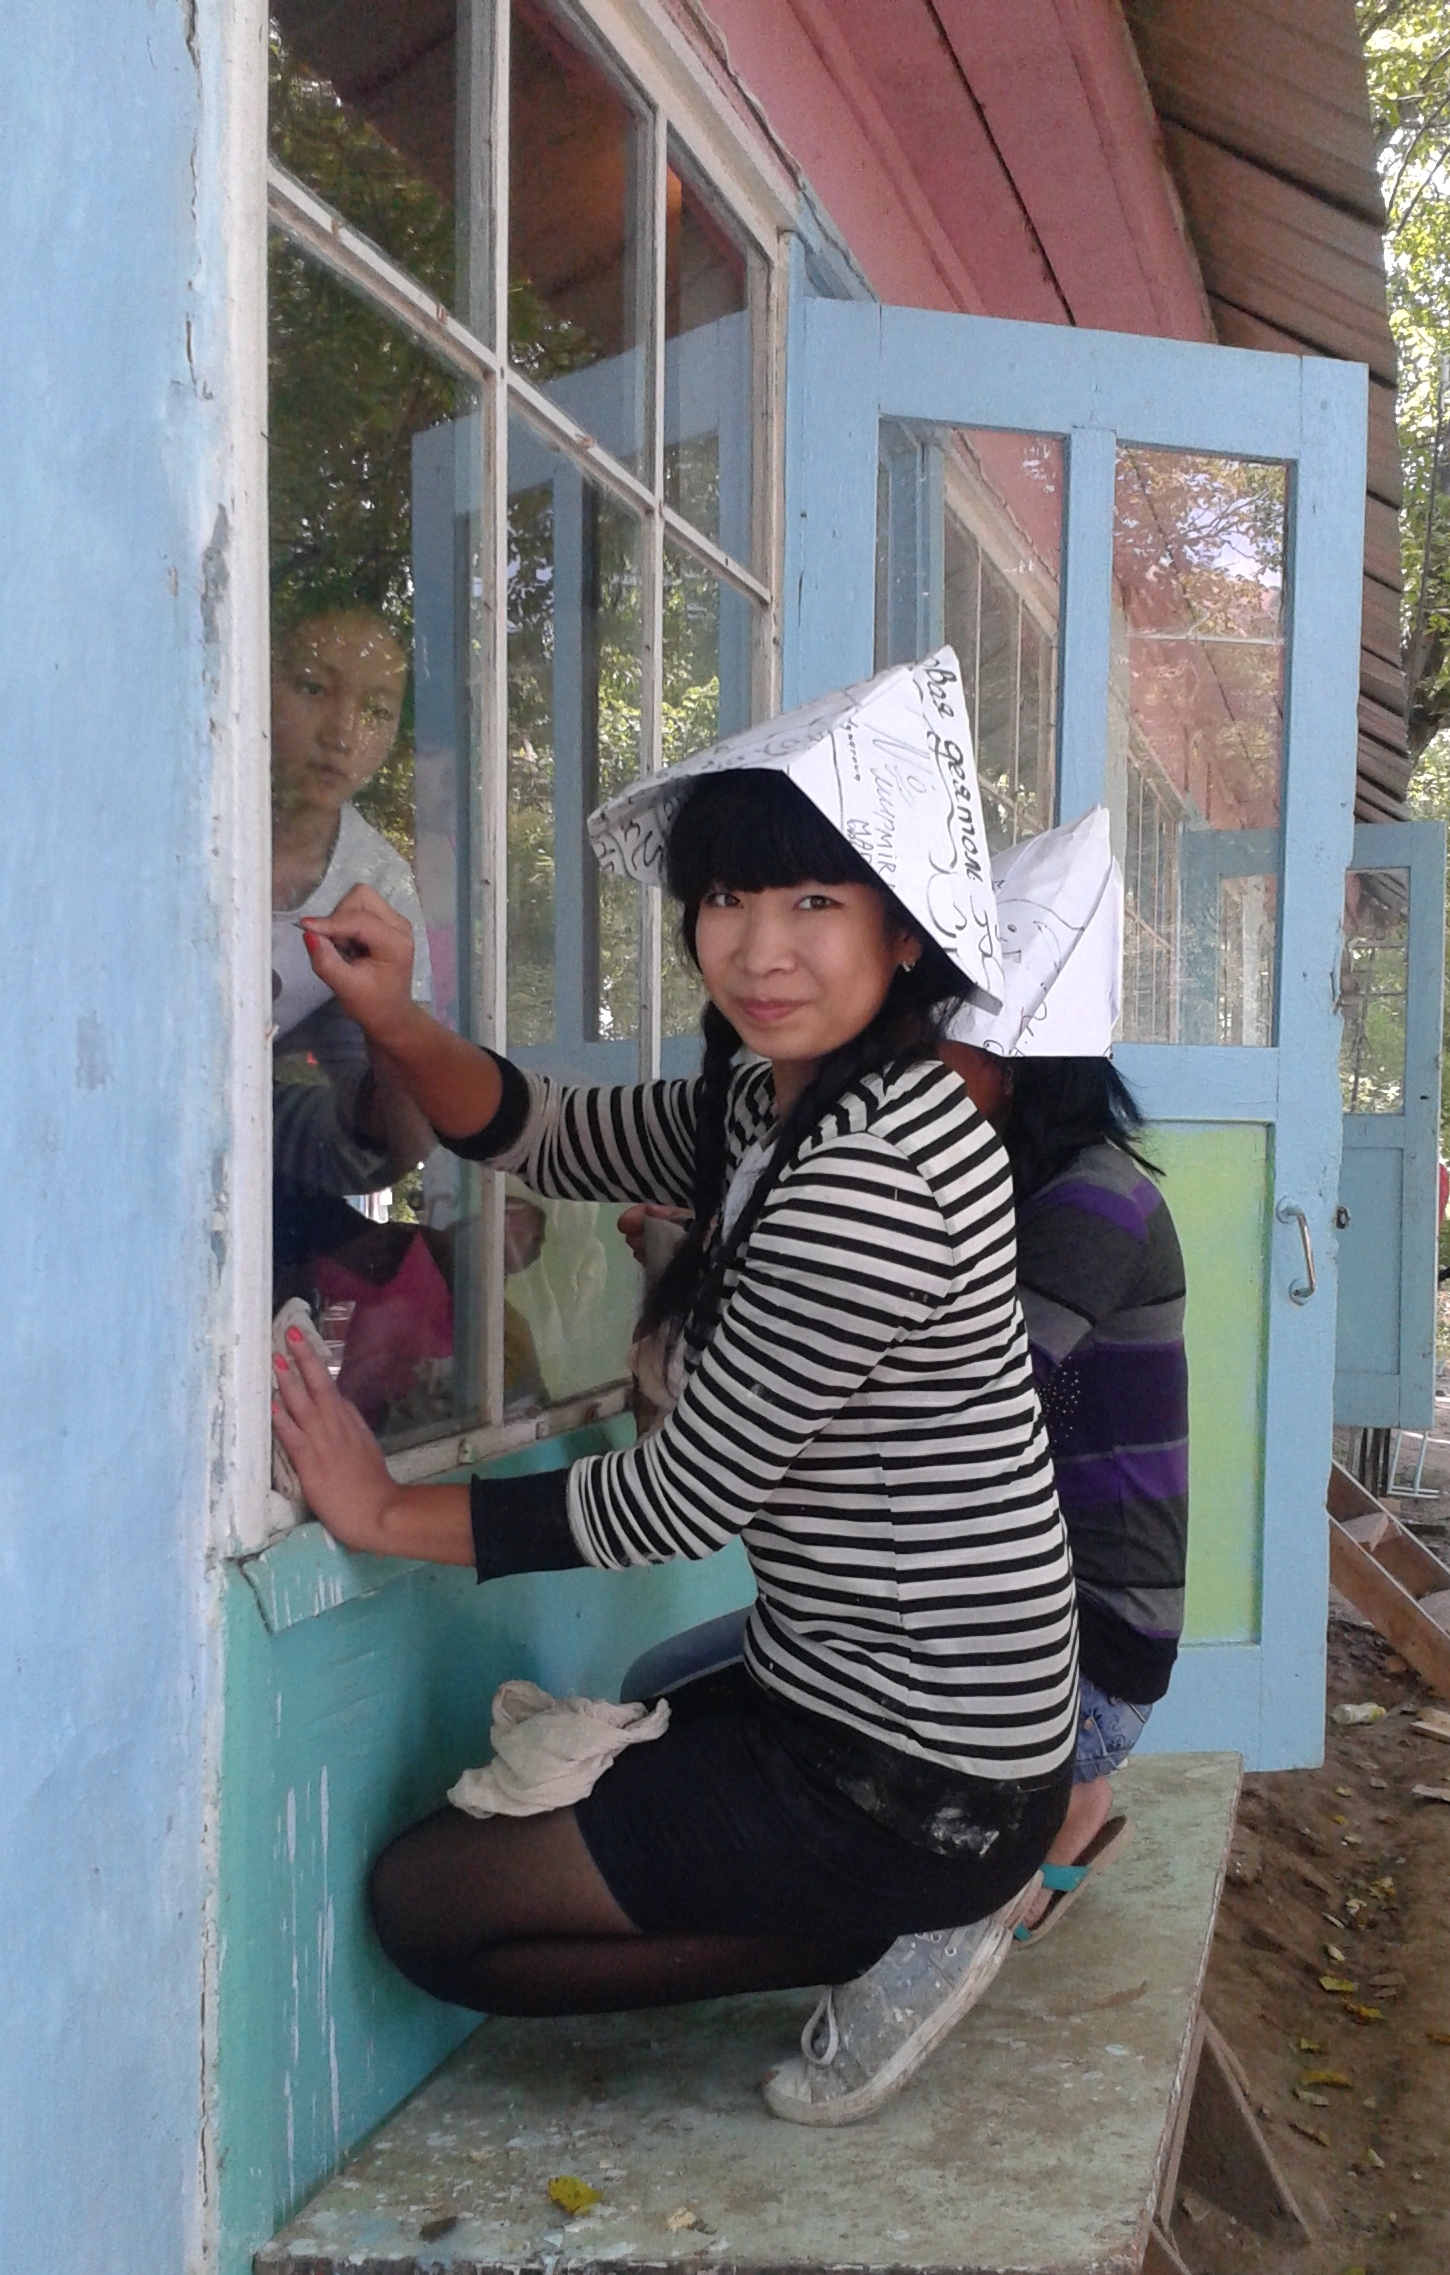 Adina, with other volunteers, repairs and reconstructs summer camp cottages at a  residential institution for young orphans.